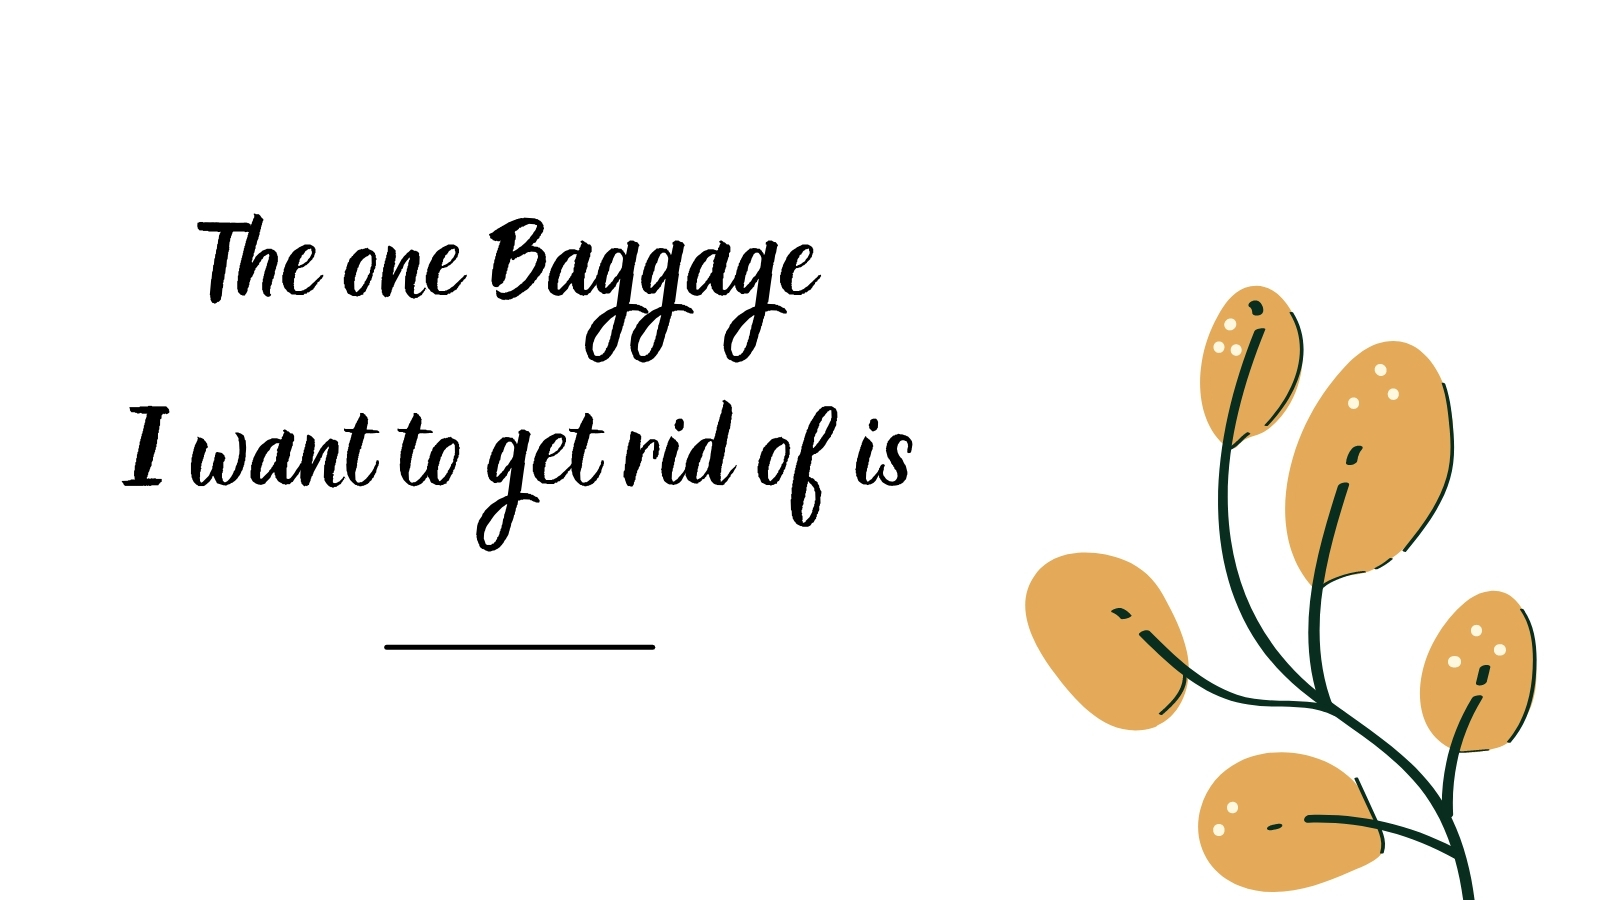 The one Baggage i want to get rid of is ___